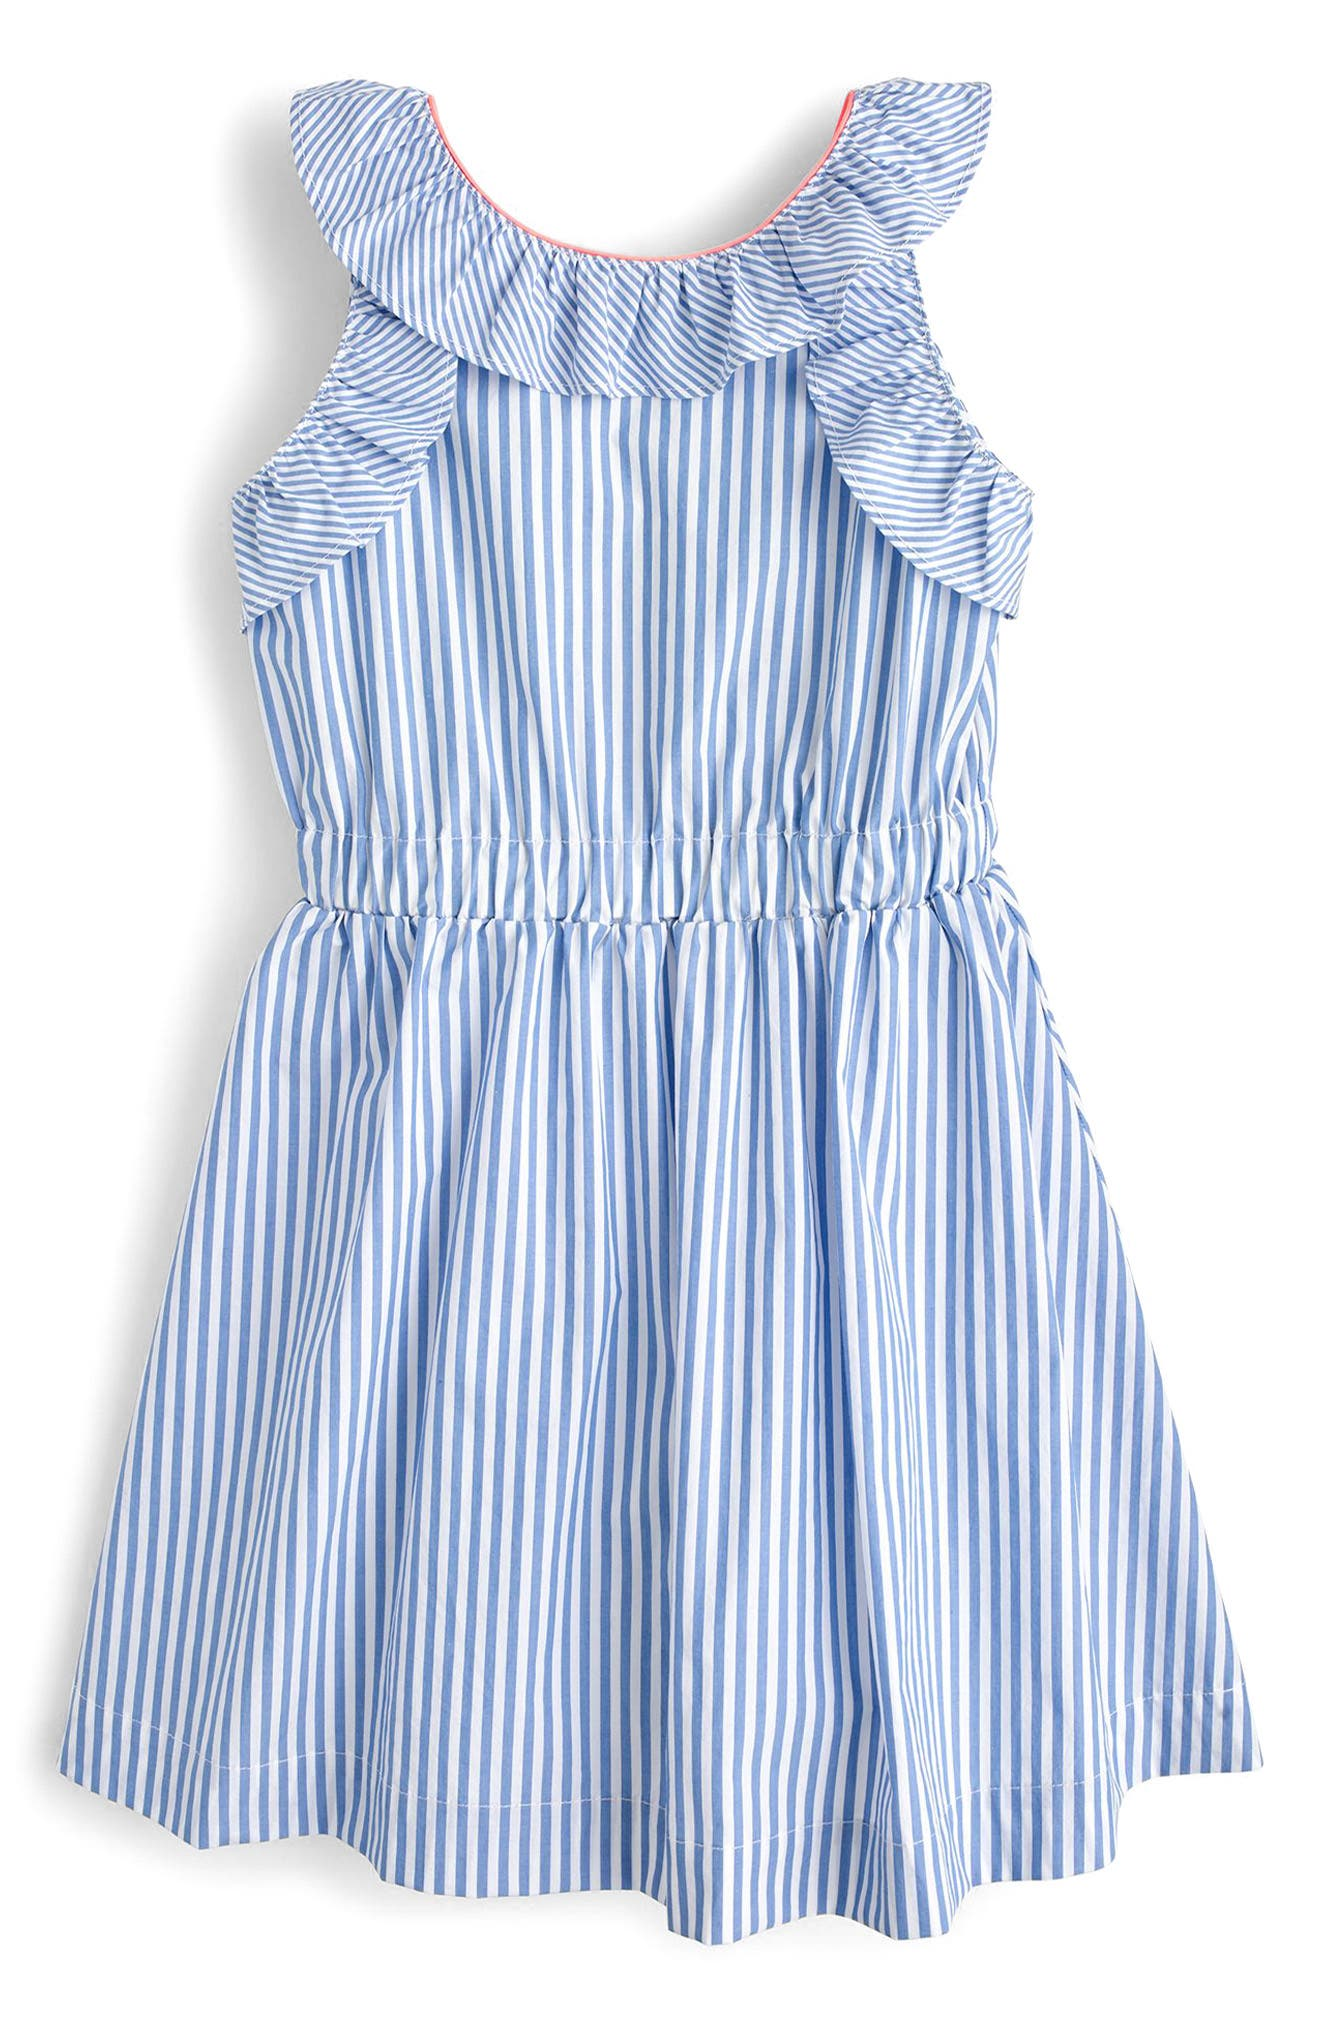 crewcuts by J. Crew Katia Stripe Ruffle Dress (Toddler Girls, Little Girls & Big Girls)